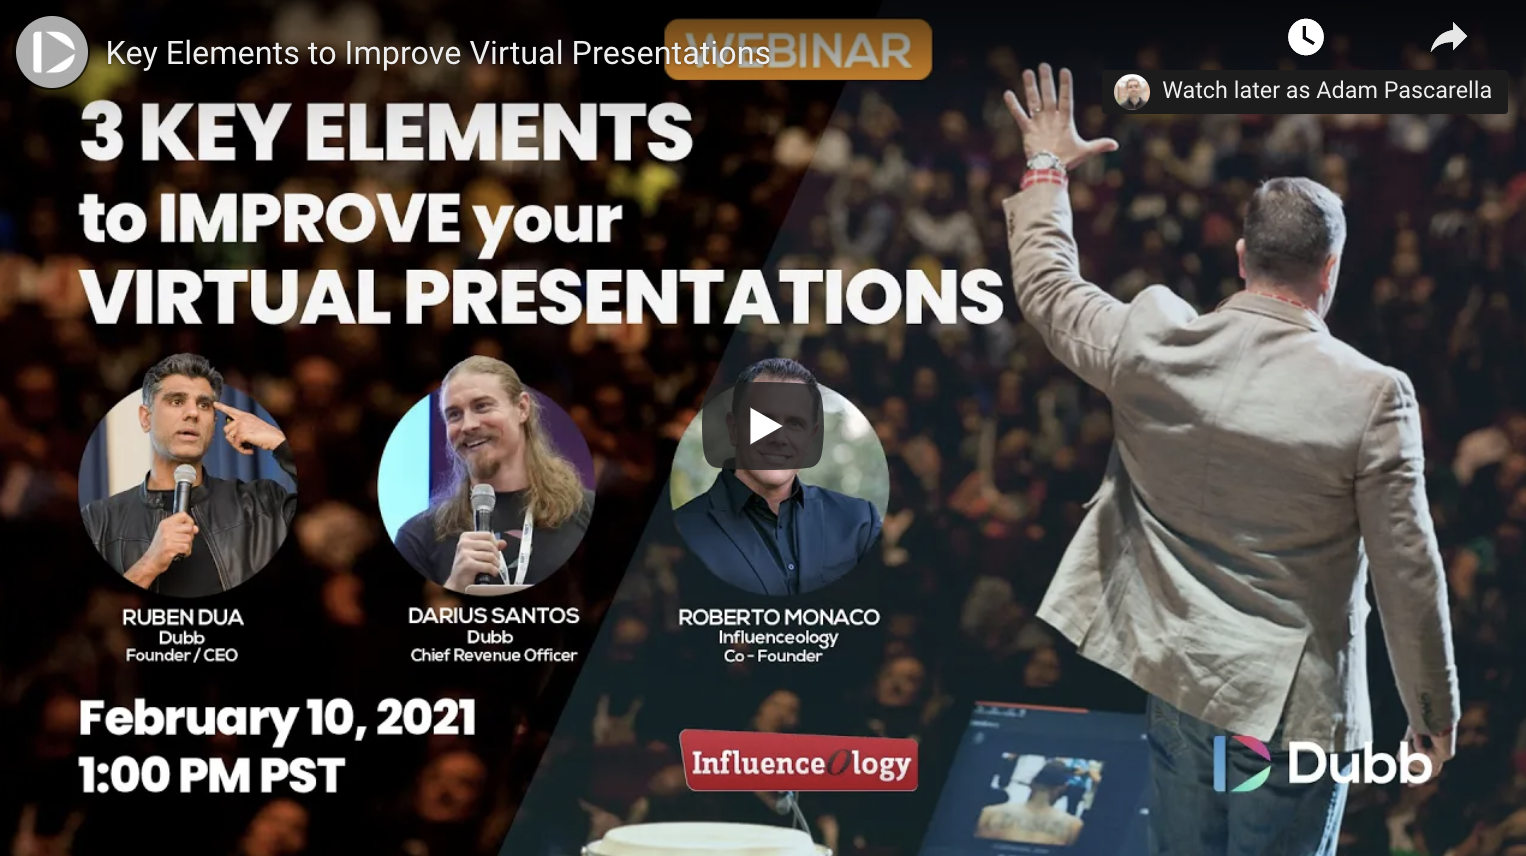 Three Key Elements for Virtual Presentations